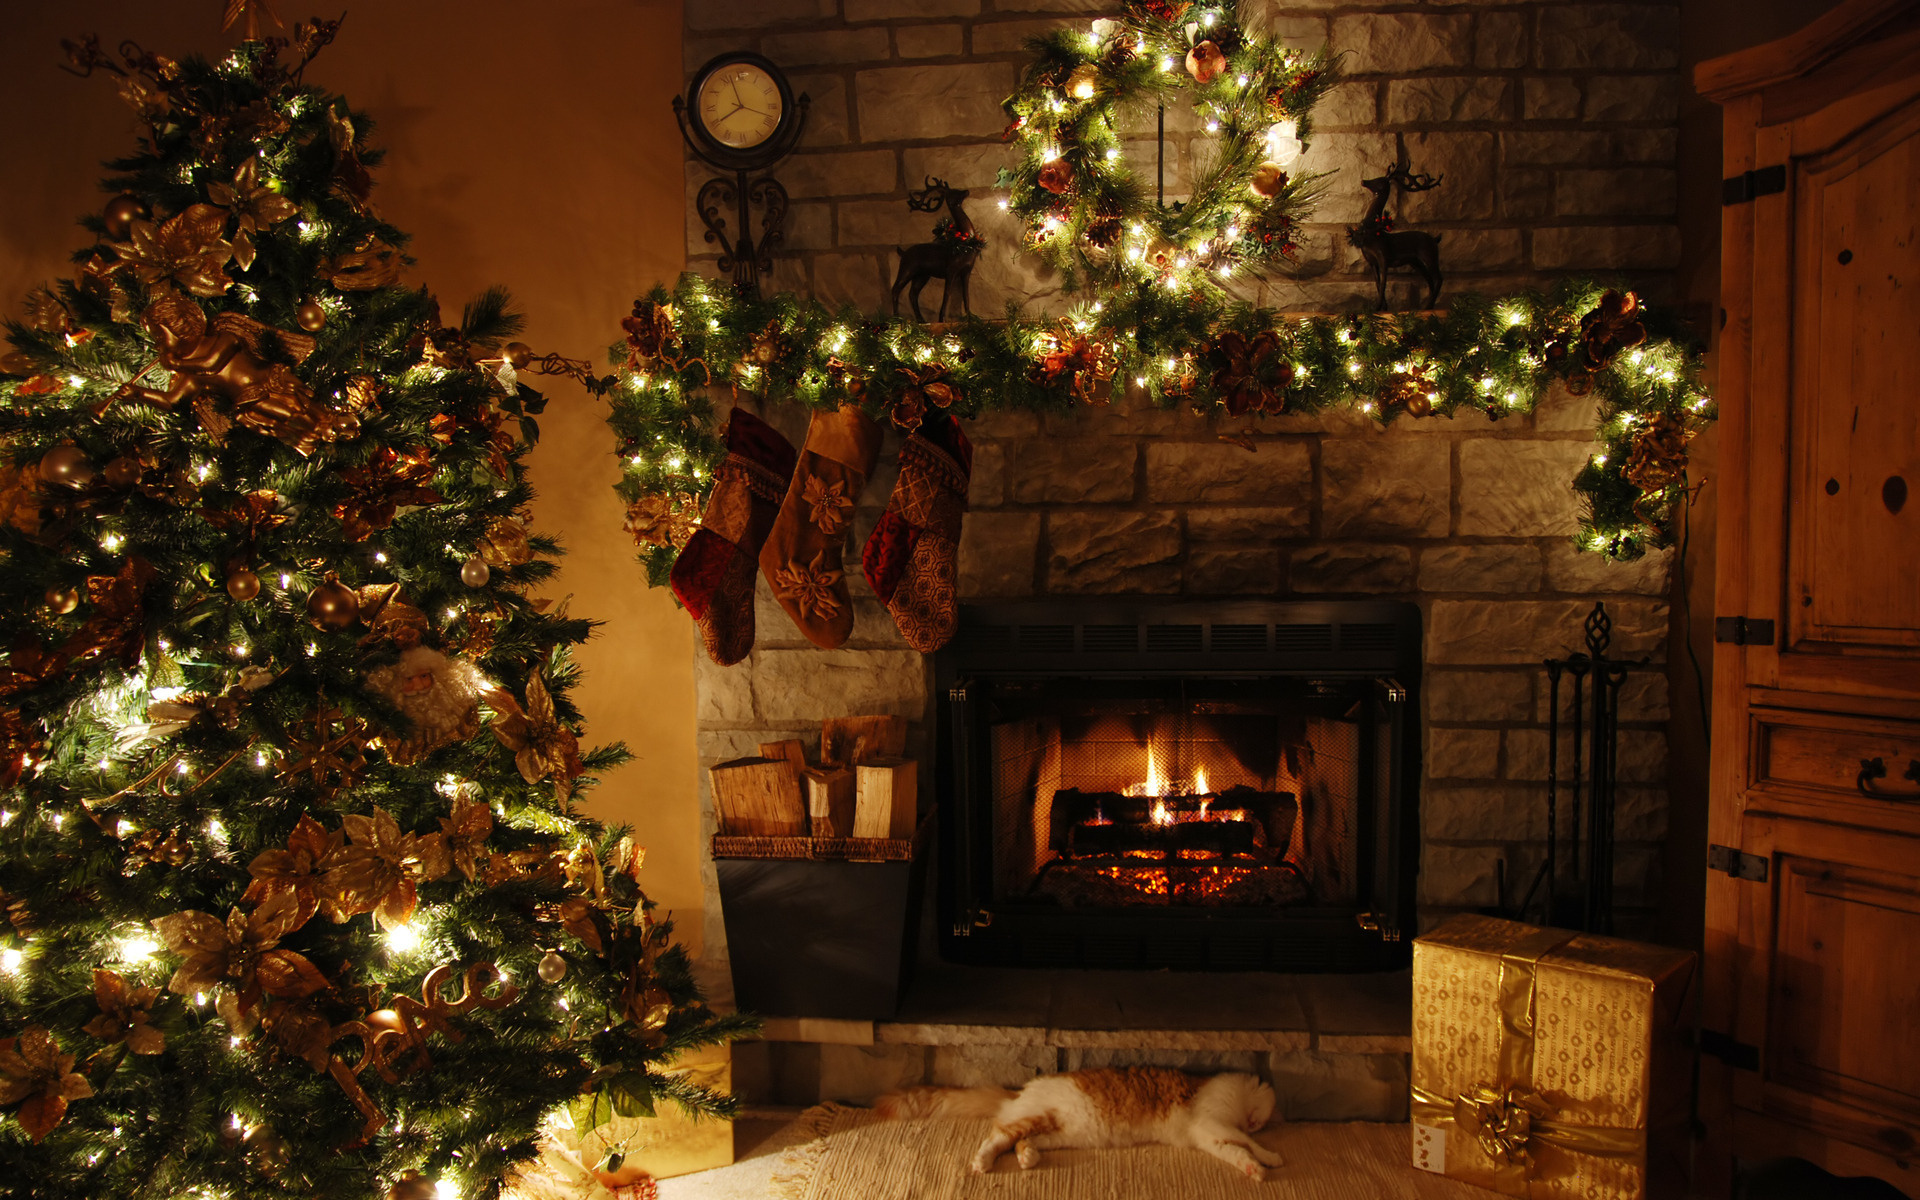 Christmas Tree and Fireplace   Wallpapers Pictures Pics Photos 1920x1200